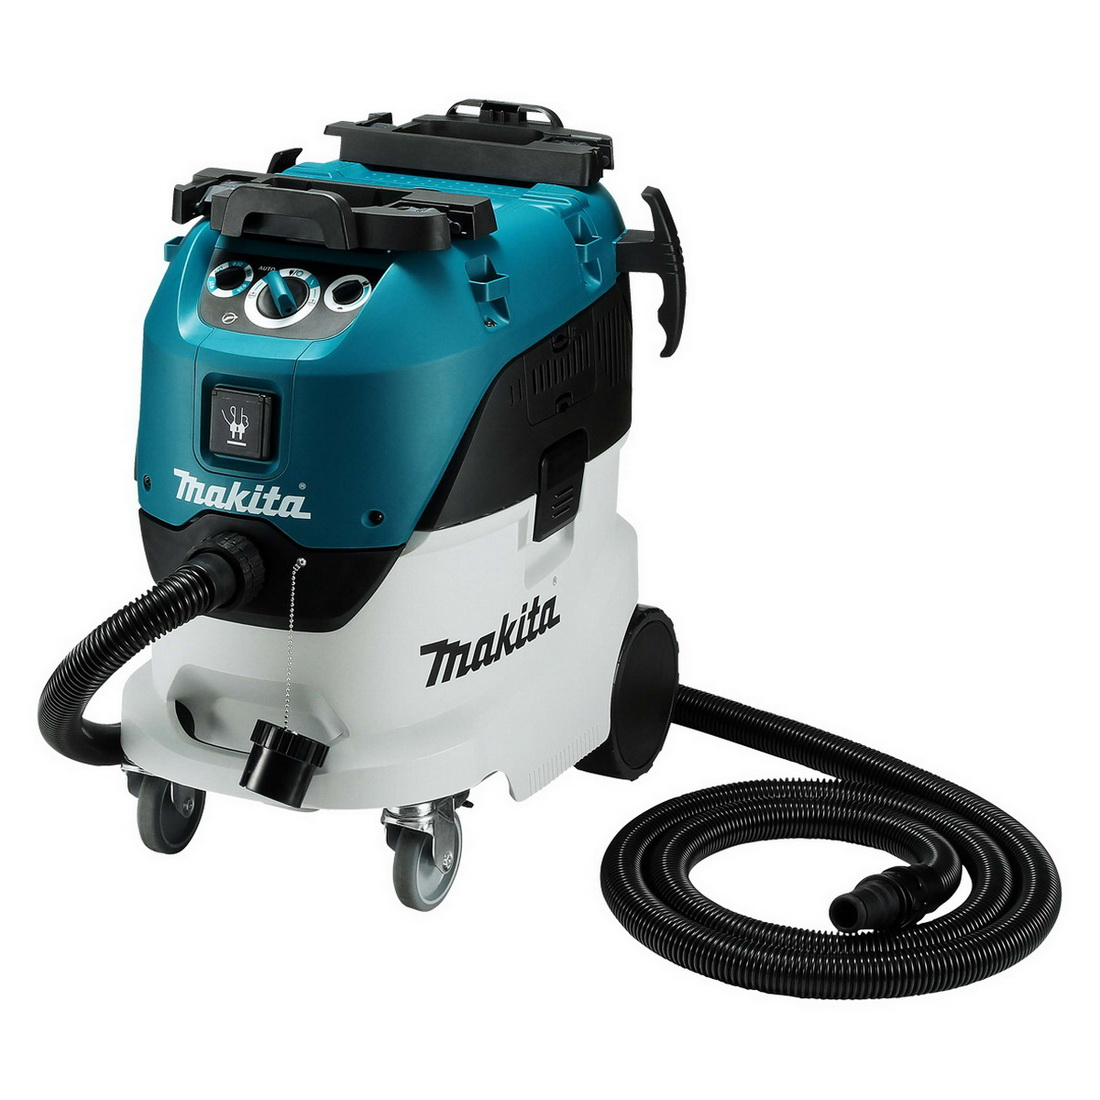 42L M-Class Wet/Dry Dust Extractor